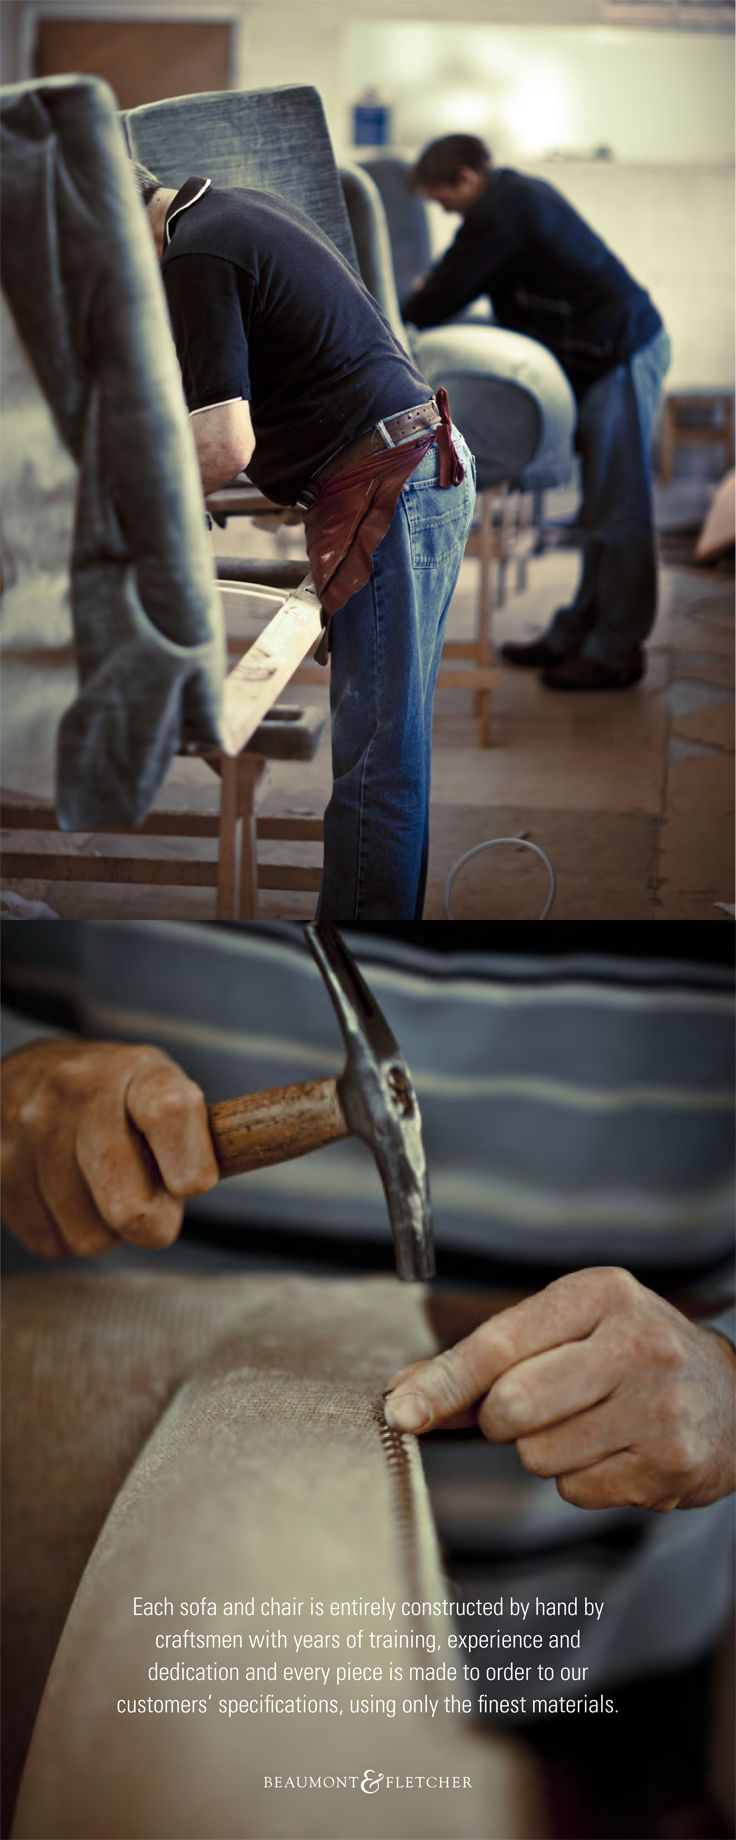 Each sofa and chair is entirely constructed by hand by craftsmen with years of training, experience and dedication and every pieces is made to order to our customers' specifications, using only the finest materials.